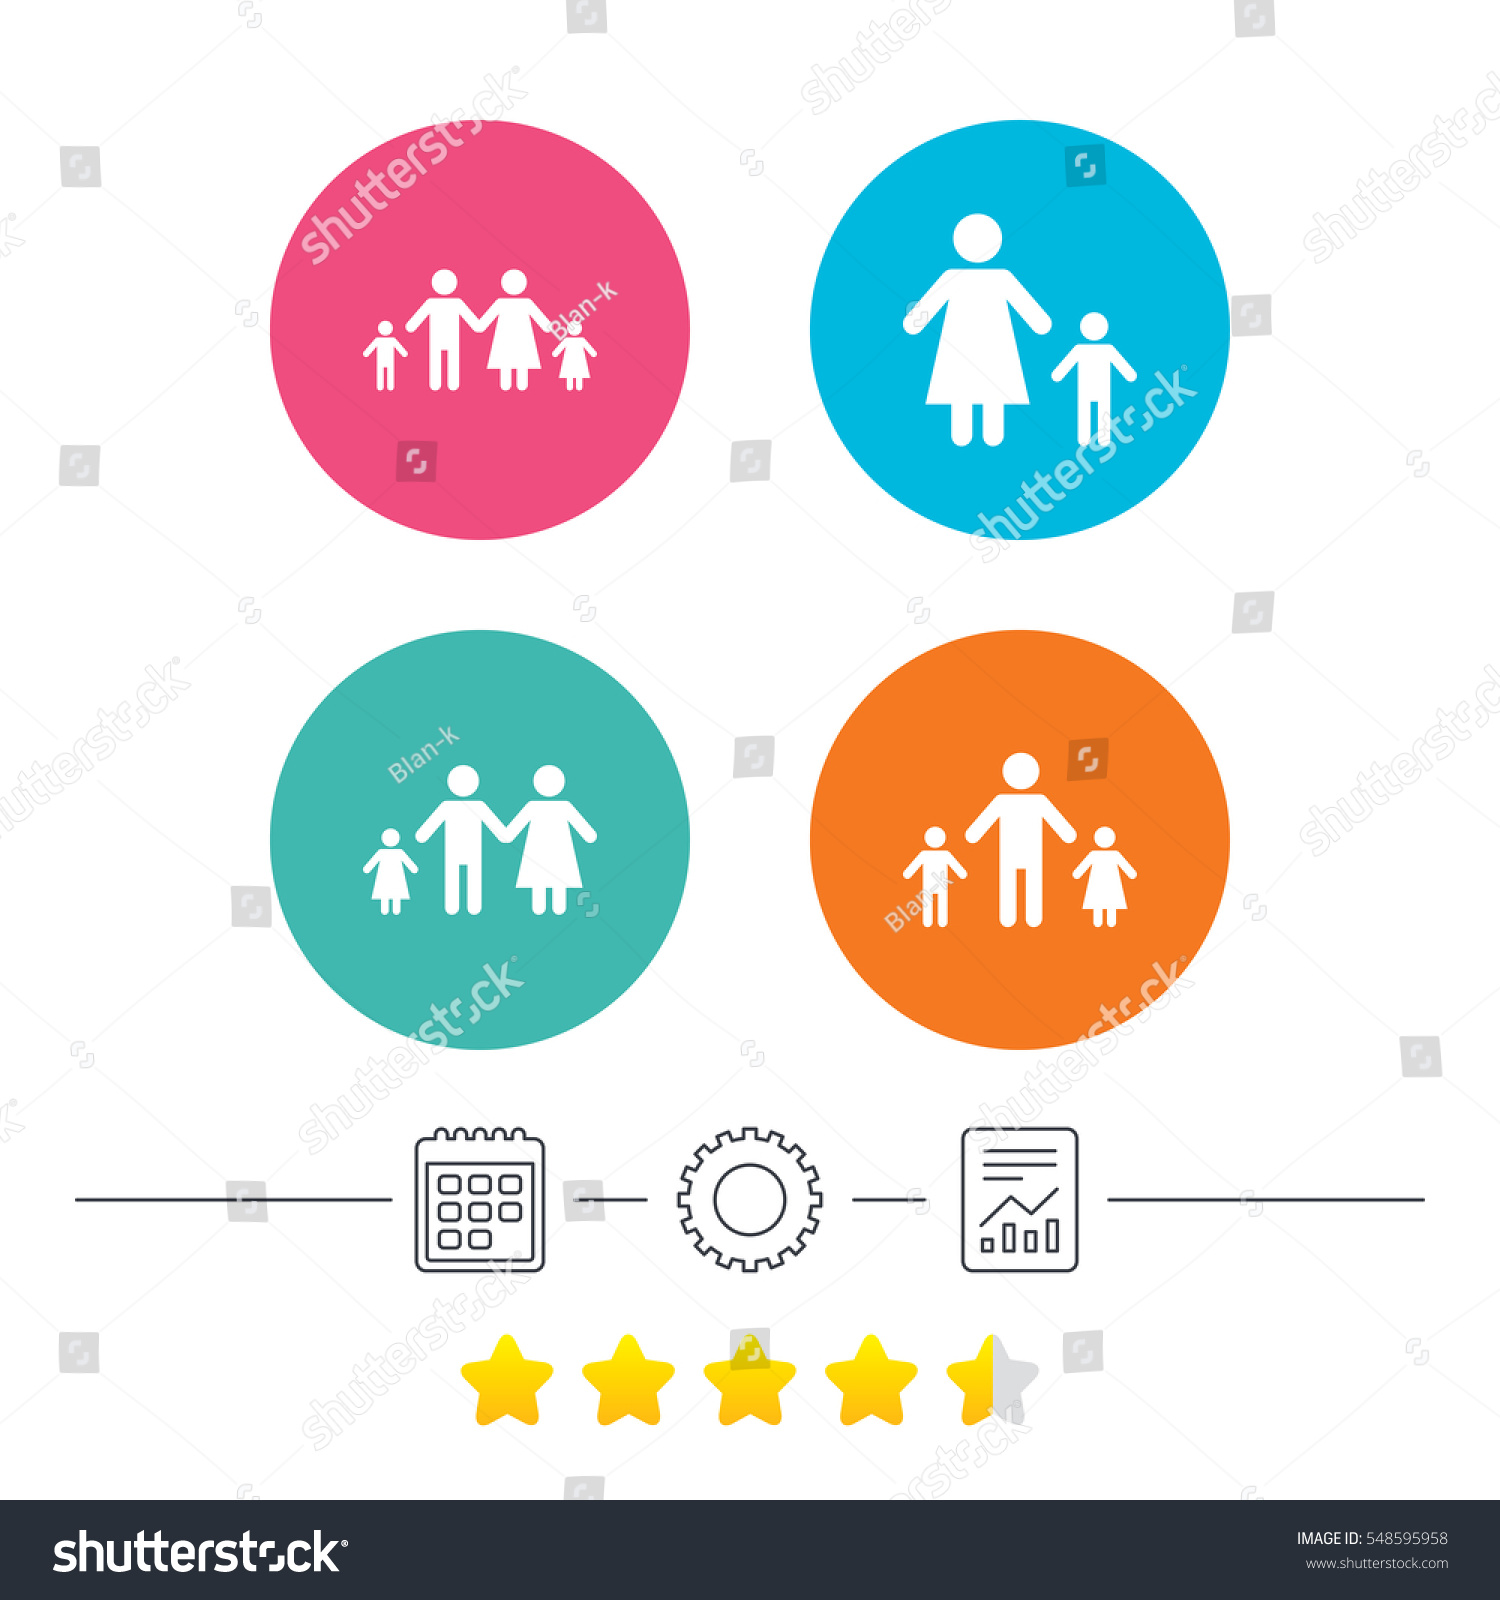 Family two children icon parents kids stock illustration 548595958 family with two children icon parents and kids symbols one parent family signs buycottarizona